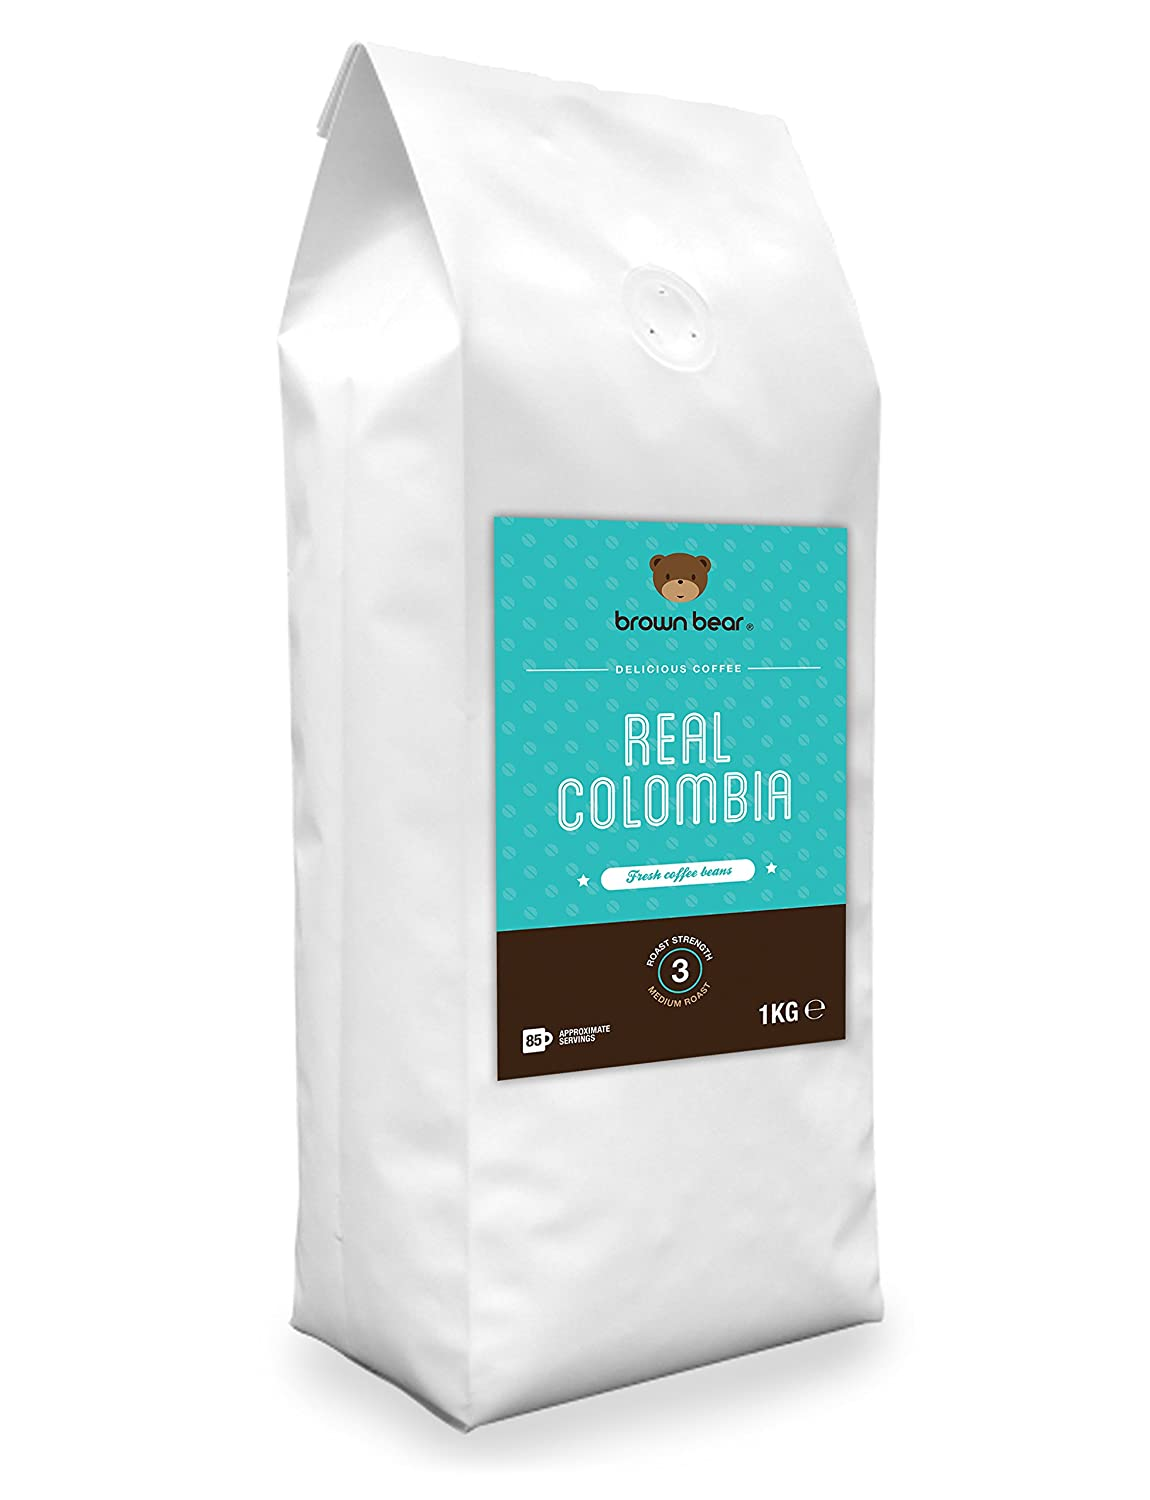 Brown Bear Real Colombia Café En Grano Tostado Medio 1 kg: Amazon.es: Alimentación y bebidas